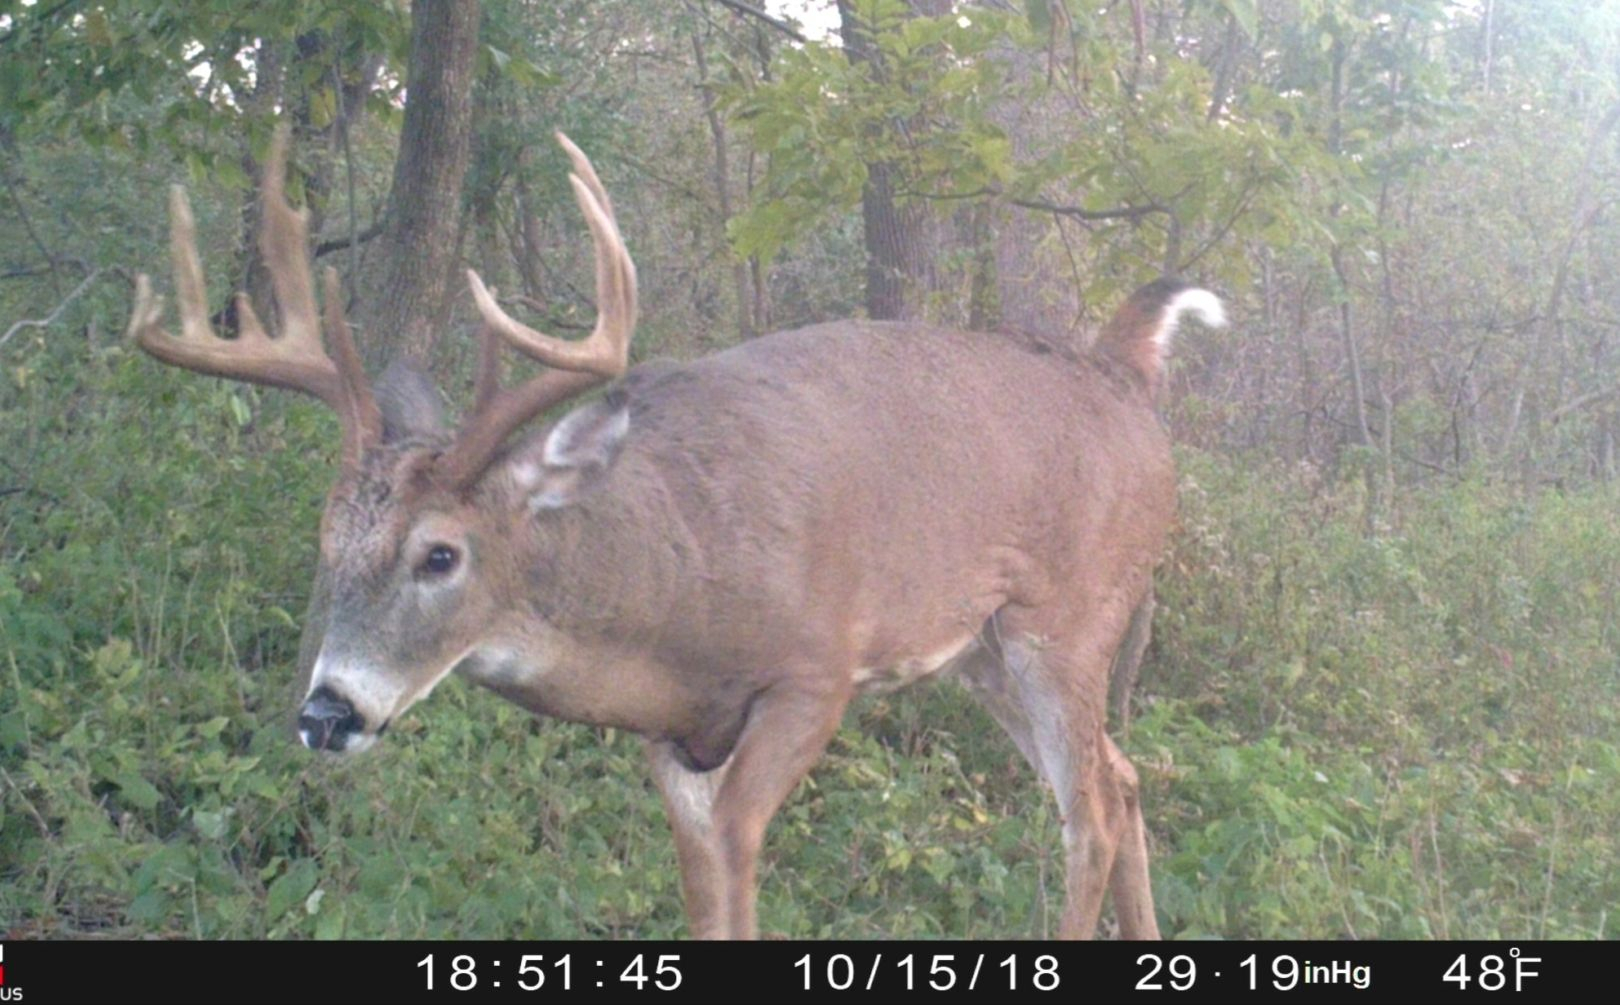 When Will The Whitetail Rut Begin | Whitetail Habitat Solutions inside Indiana 2020 Whitetail Deer Rut Timing Predictions